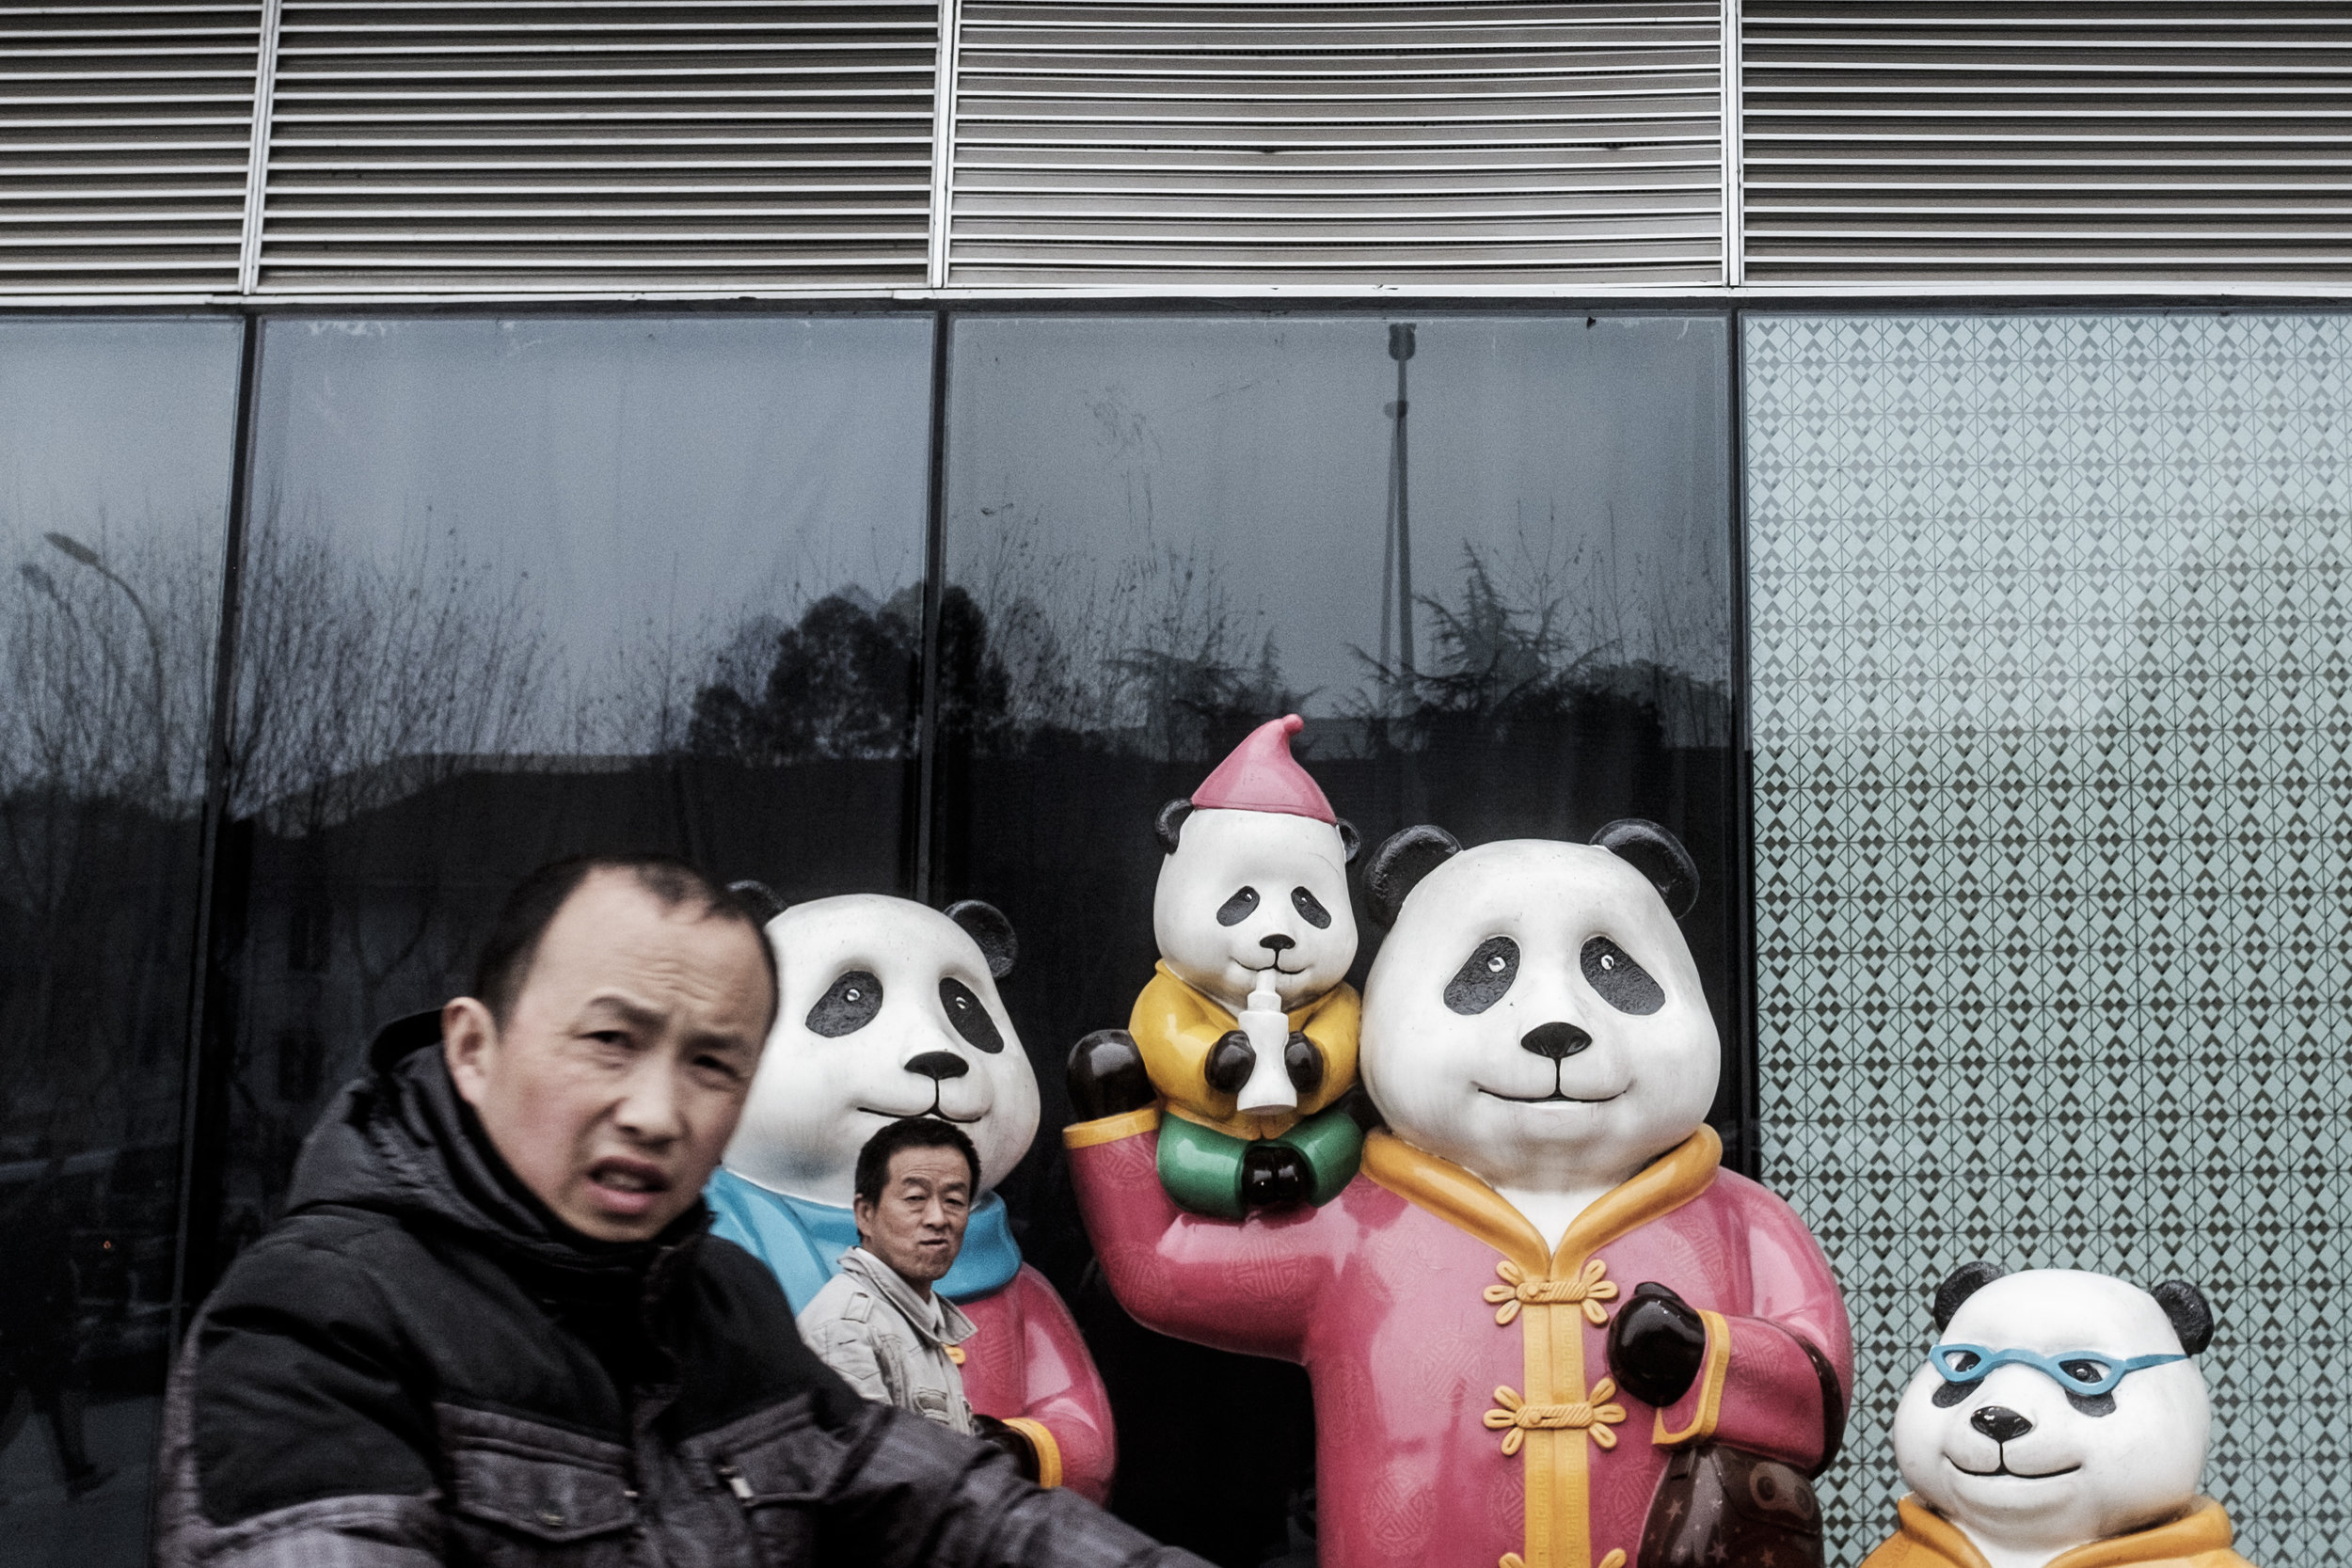 In 1979, China introduced the controversial one-child policy to curb its large population growth. As it was traditionally wanted to have boys, the law contributed to a large gender imbalance. The law was officially removed in 2015. A Panda can get around seven offspring throughout its lifetime. Female pandas are fertilel two to three days in a year. Something that makes it incredibly difficult to get Pandas to reproduce. The first panda born in captivity was Ming Ming in 1963.